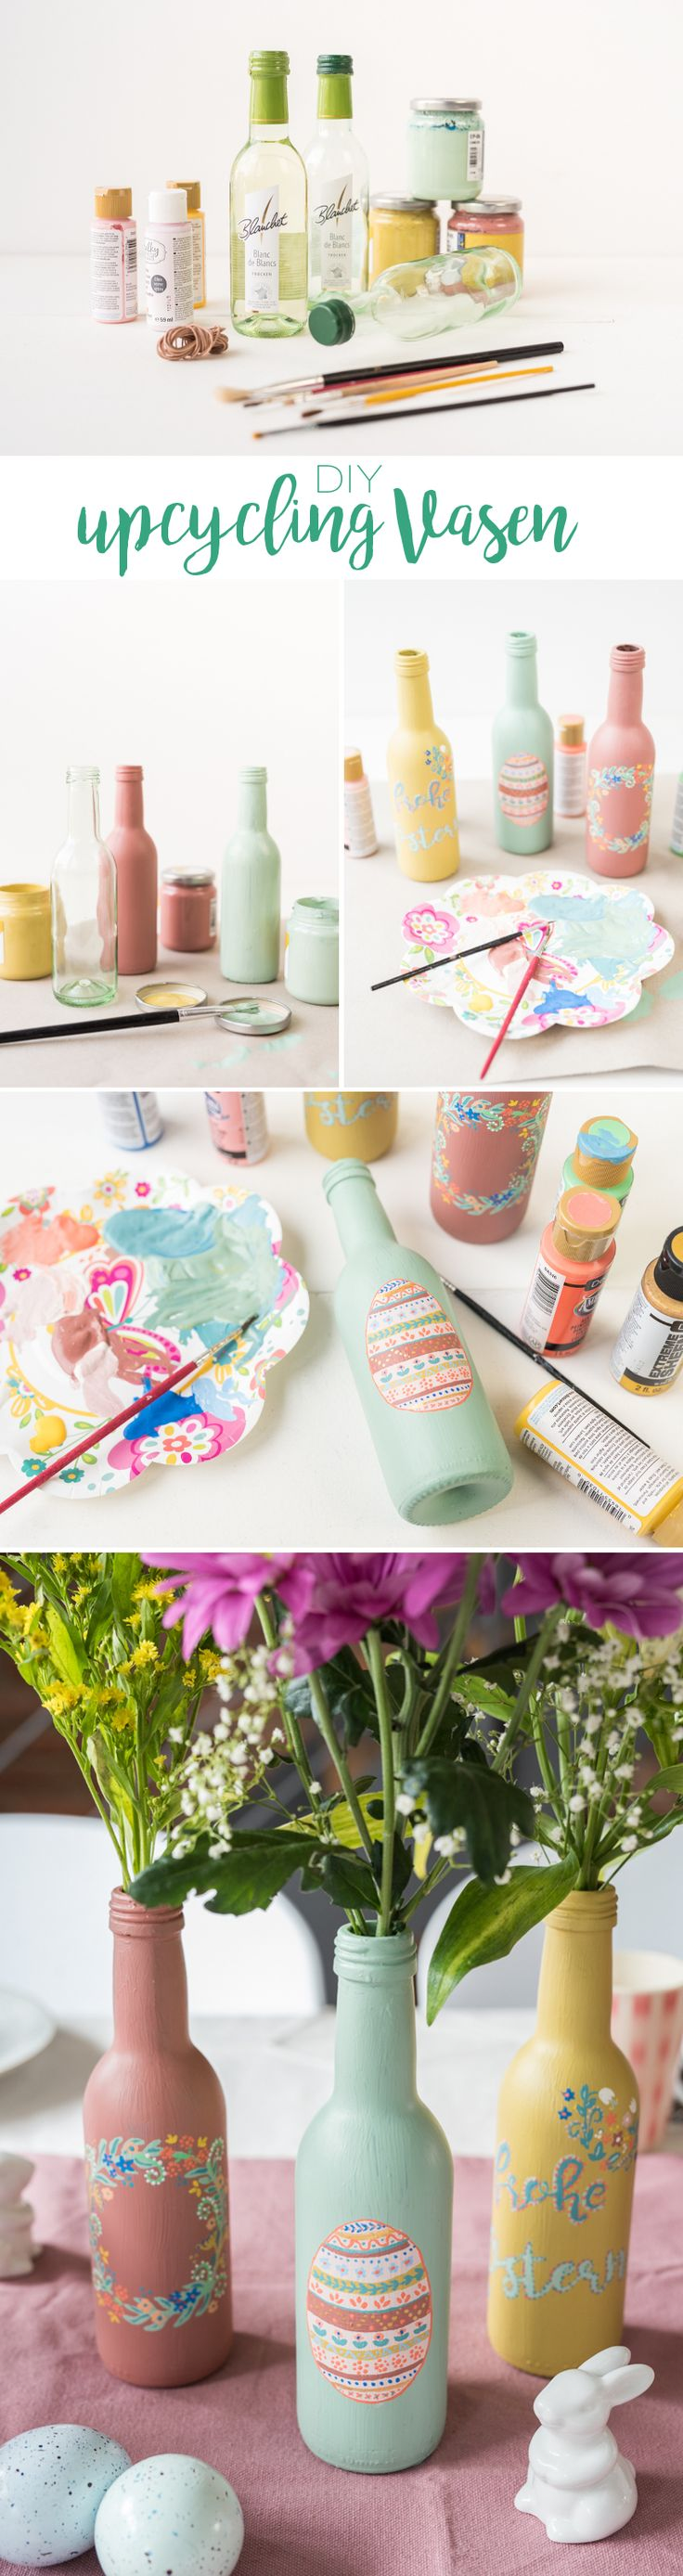 DIY – table decoration for Easter: upcycling flower vases from bottles  #bottles #decoration #easter #flower #table #upcycling #vases Easy Idea